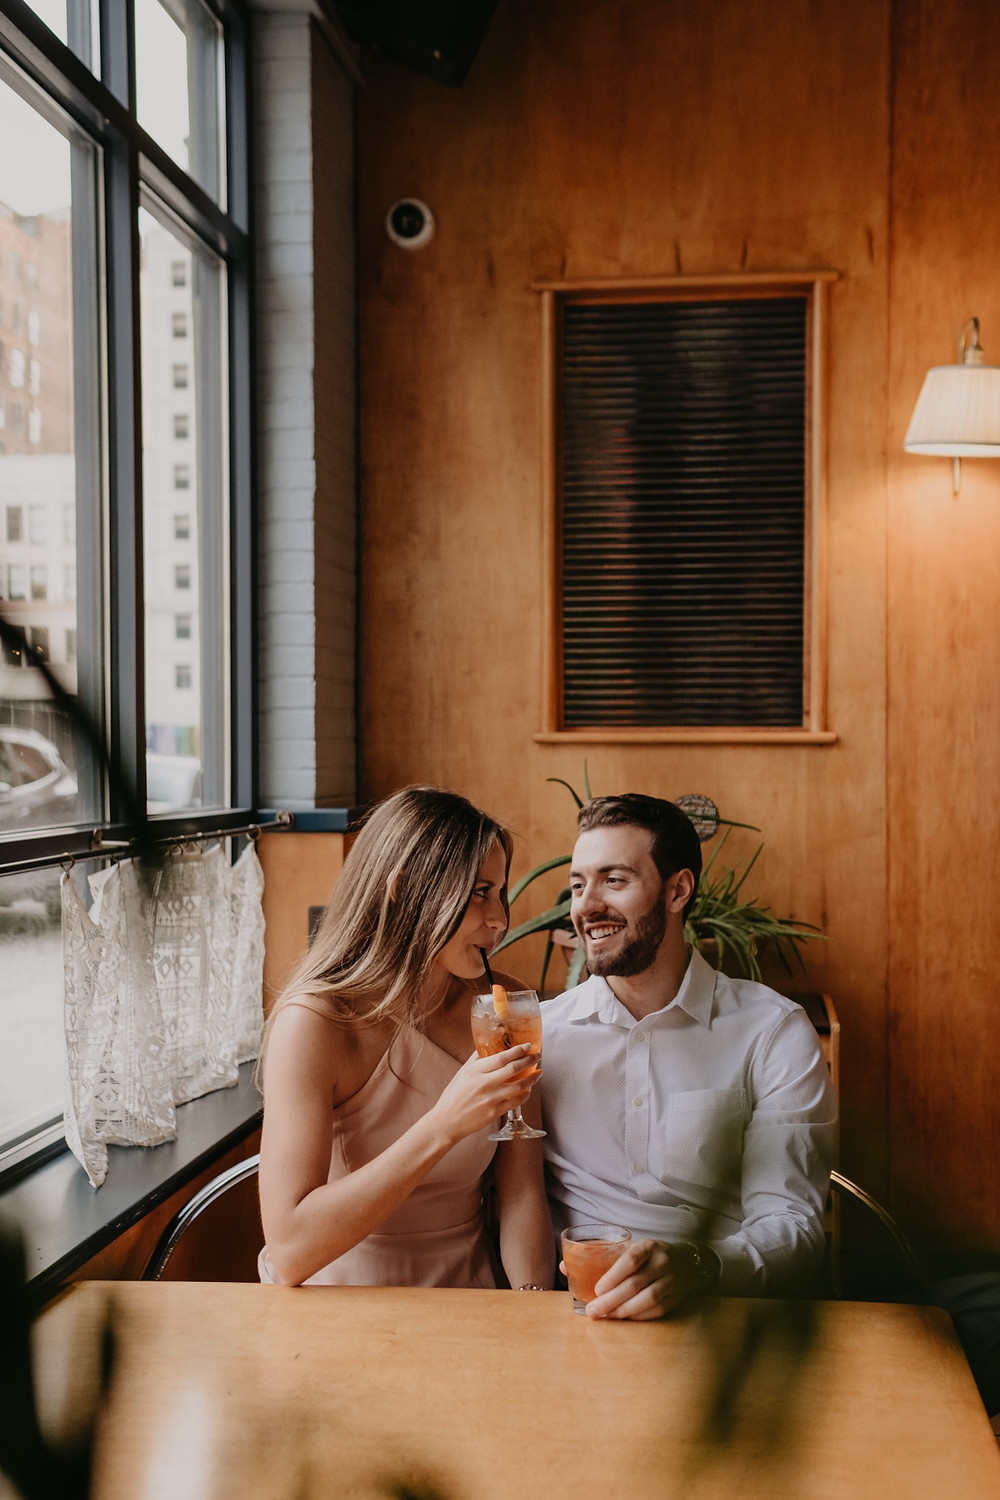 Couple enjoying drinks at bar in Detroit. Photographed by Nicole Leanne Photography.